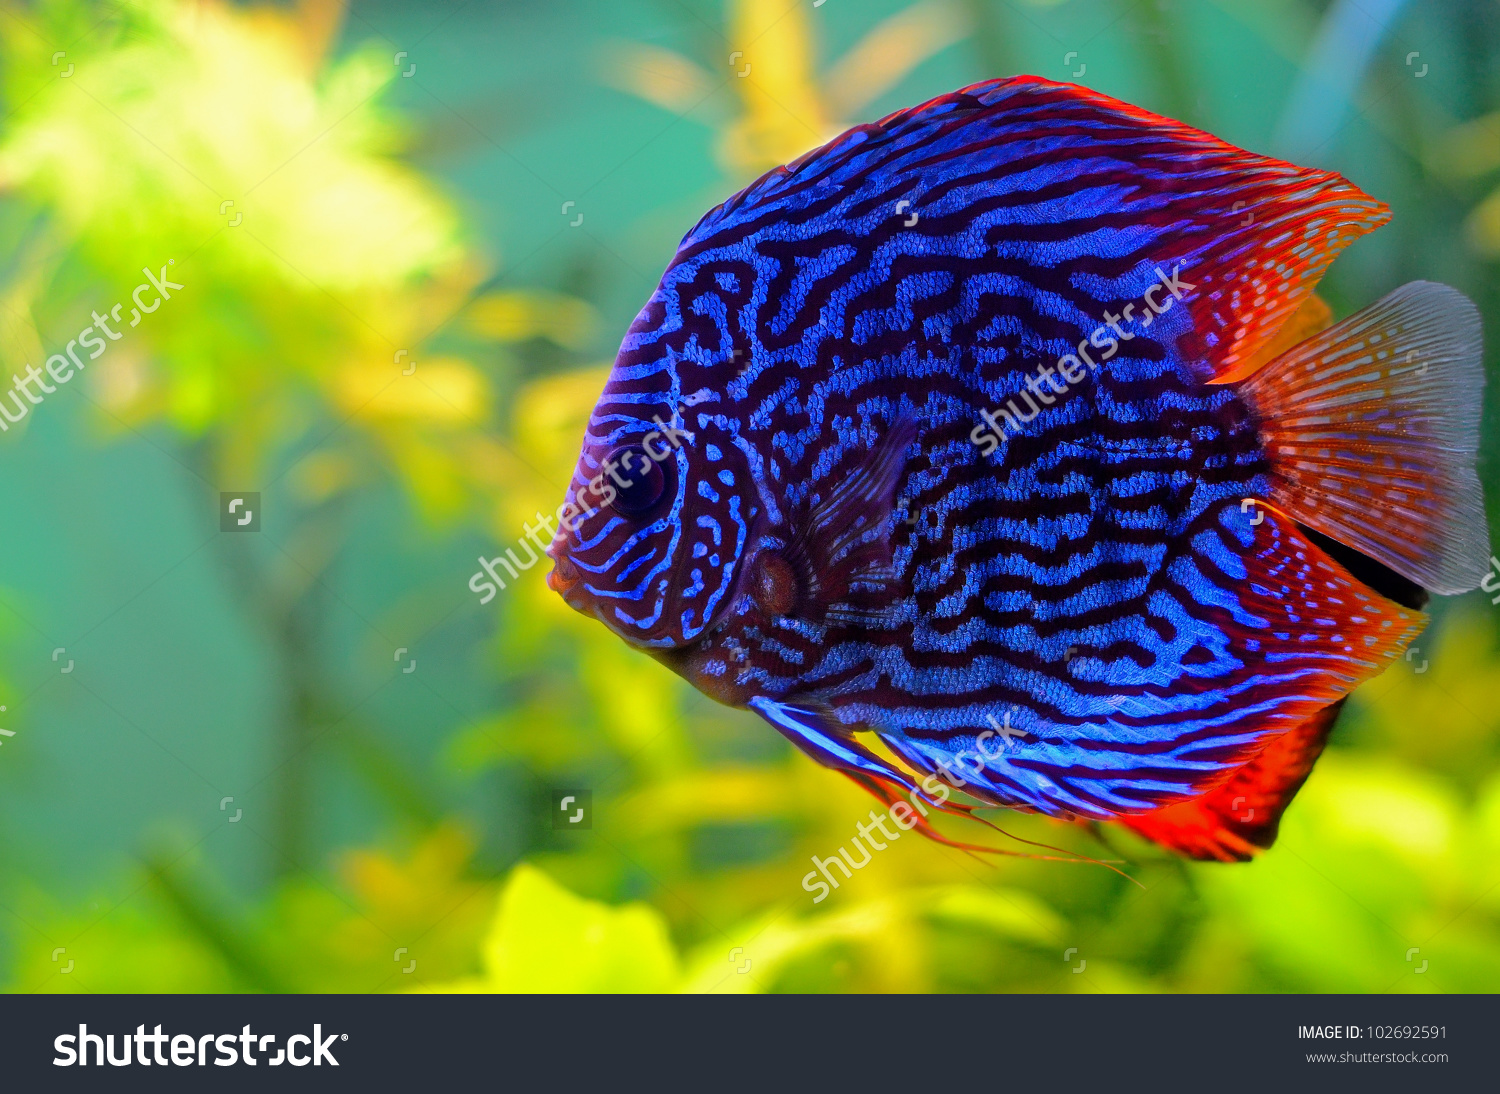 Blue discus fish the fishop the fishop for Discus fish price